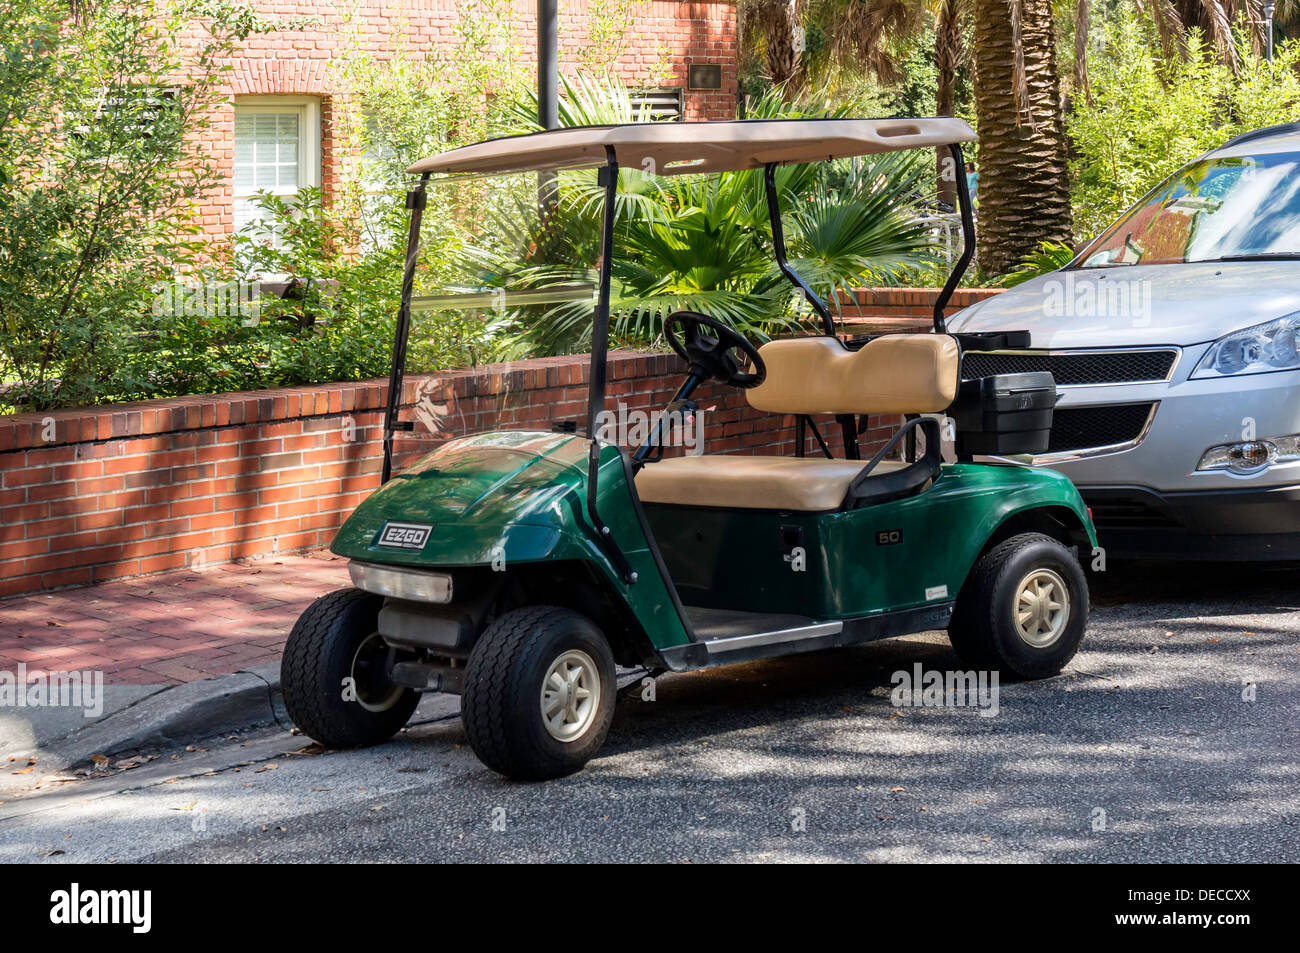 Golf Cart Wood Trim on garage wood, tools wood, boat wood, golf rack wood, truck bed wood, construction wood, trailer wood, umbrella wood, wagon wood, rolls royce wood, landscape wood, hot tub wood, car wood, eagle wood, kayak wood,